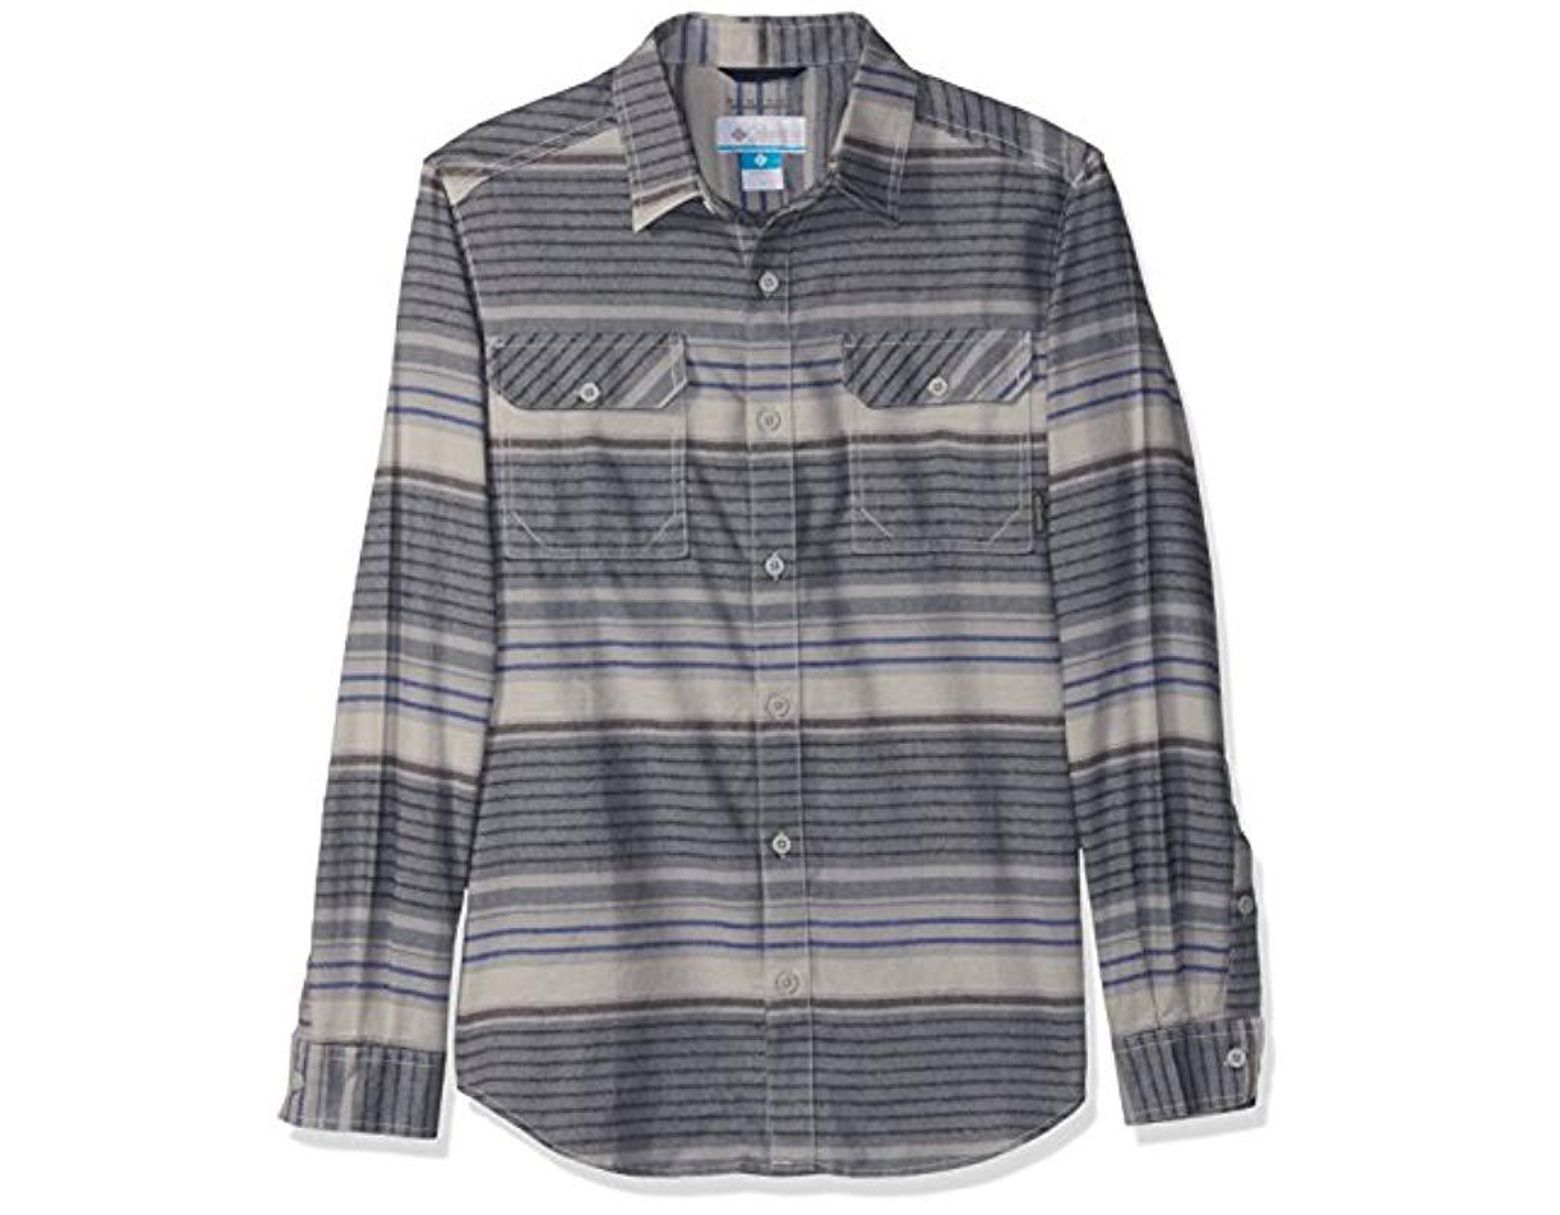 642d3be3eb6 Columbia Flare Gun Flannel Iii Long Sleeve Shirt in Gray for Men - Save 15%  - Lyst